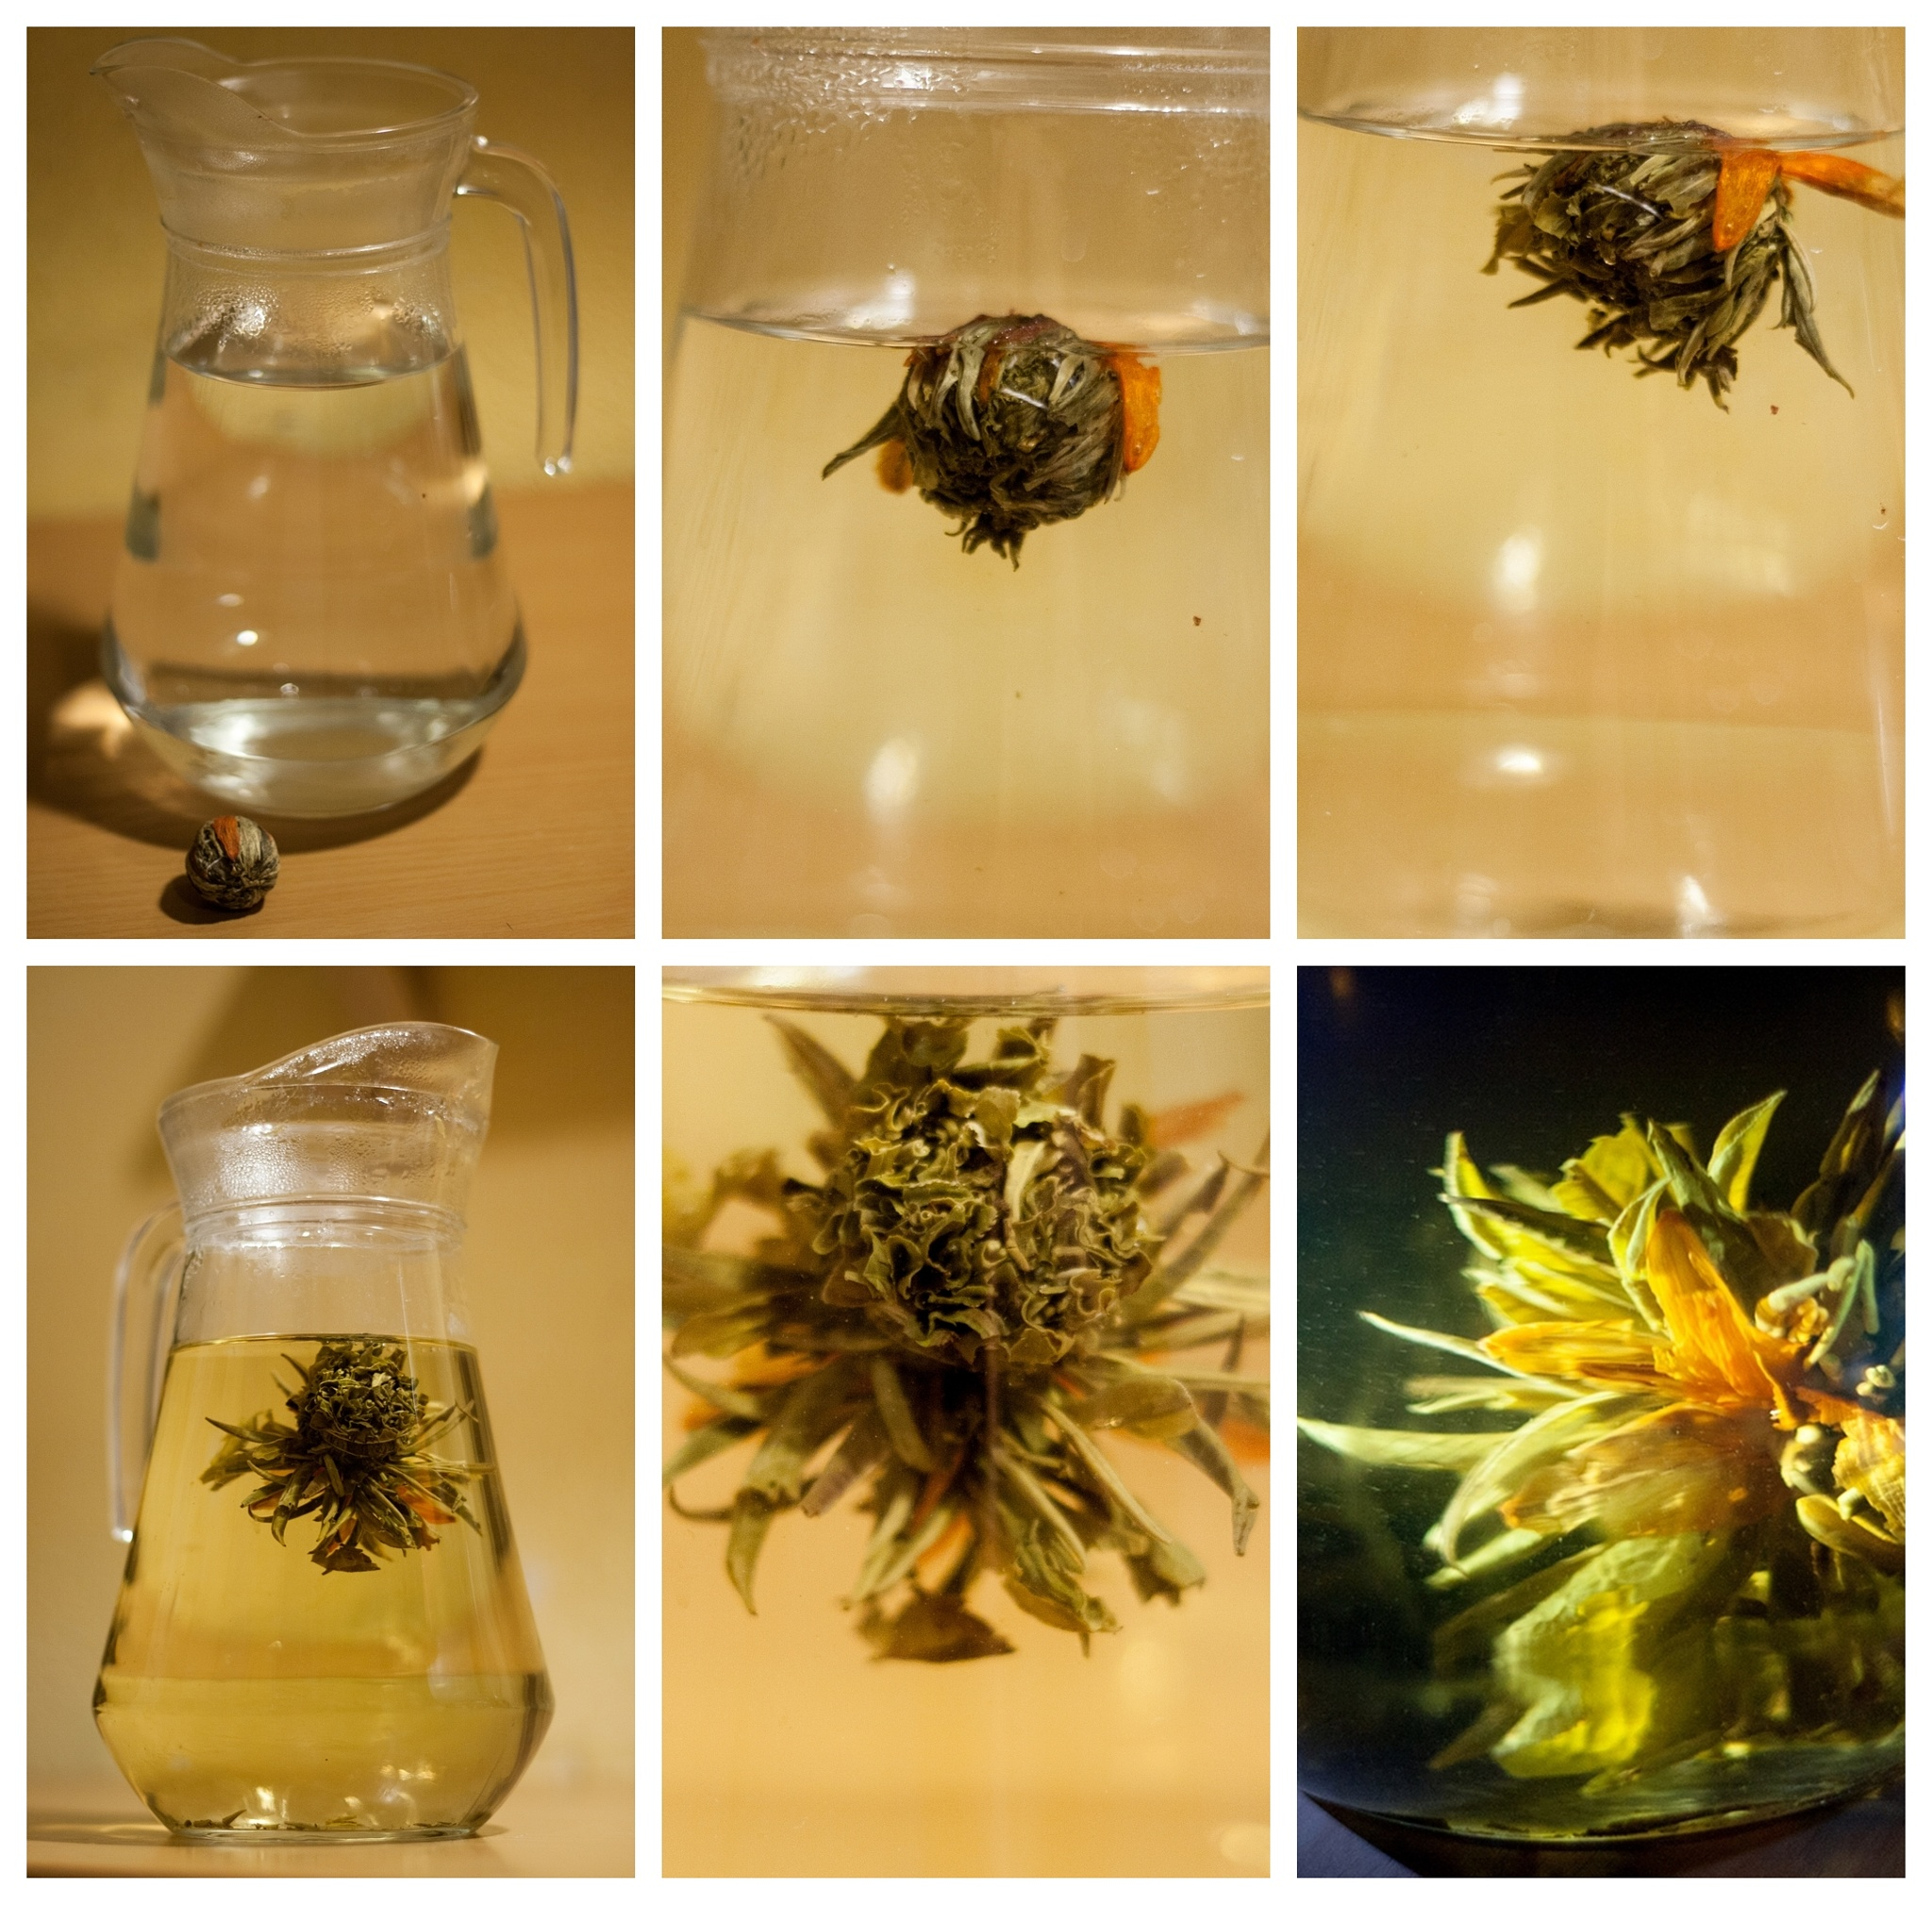 Experiment - How to get flower from tea.. by piotr.krysiak